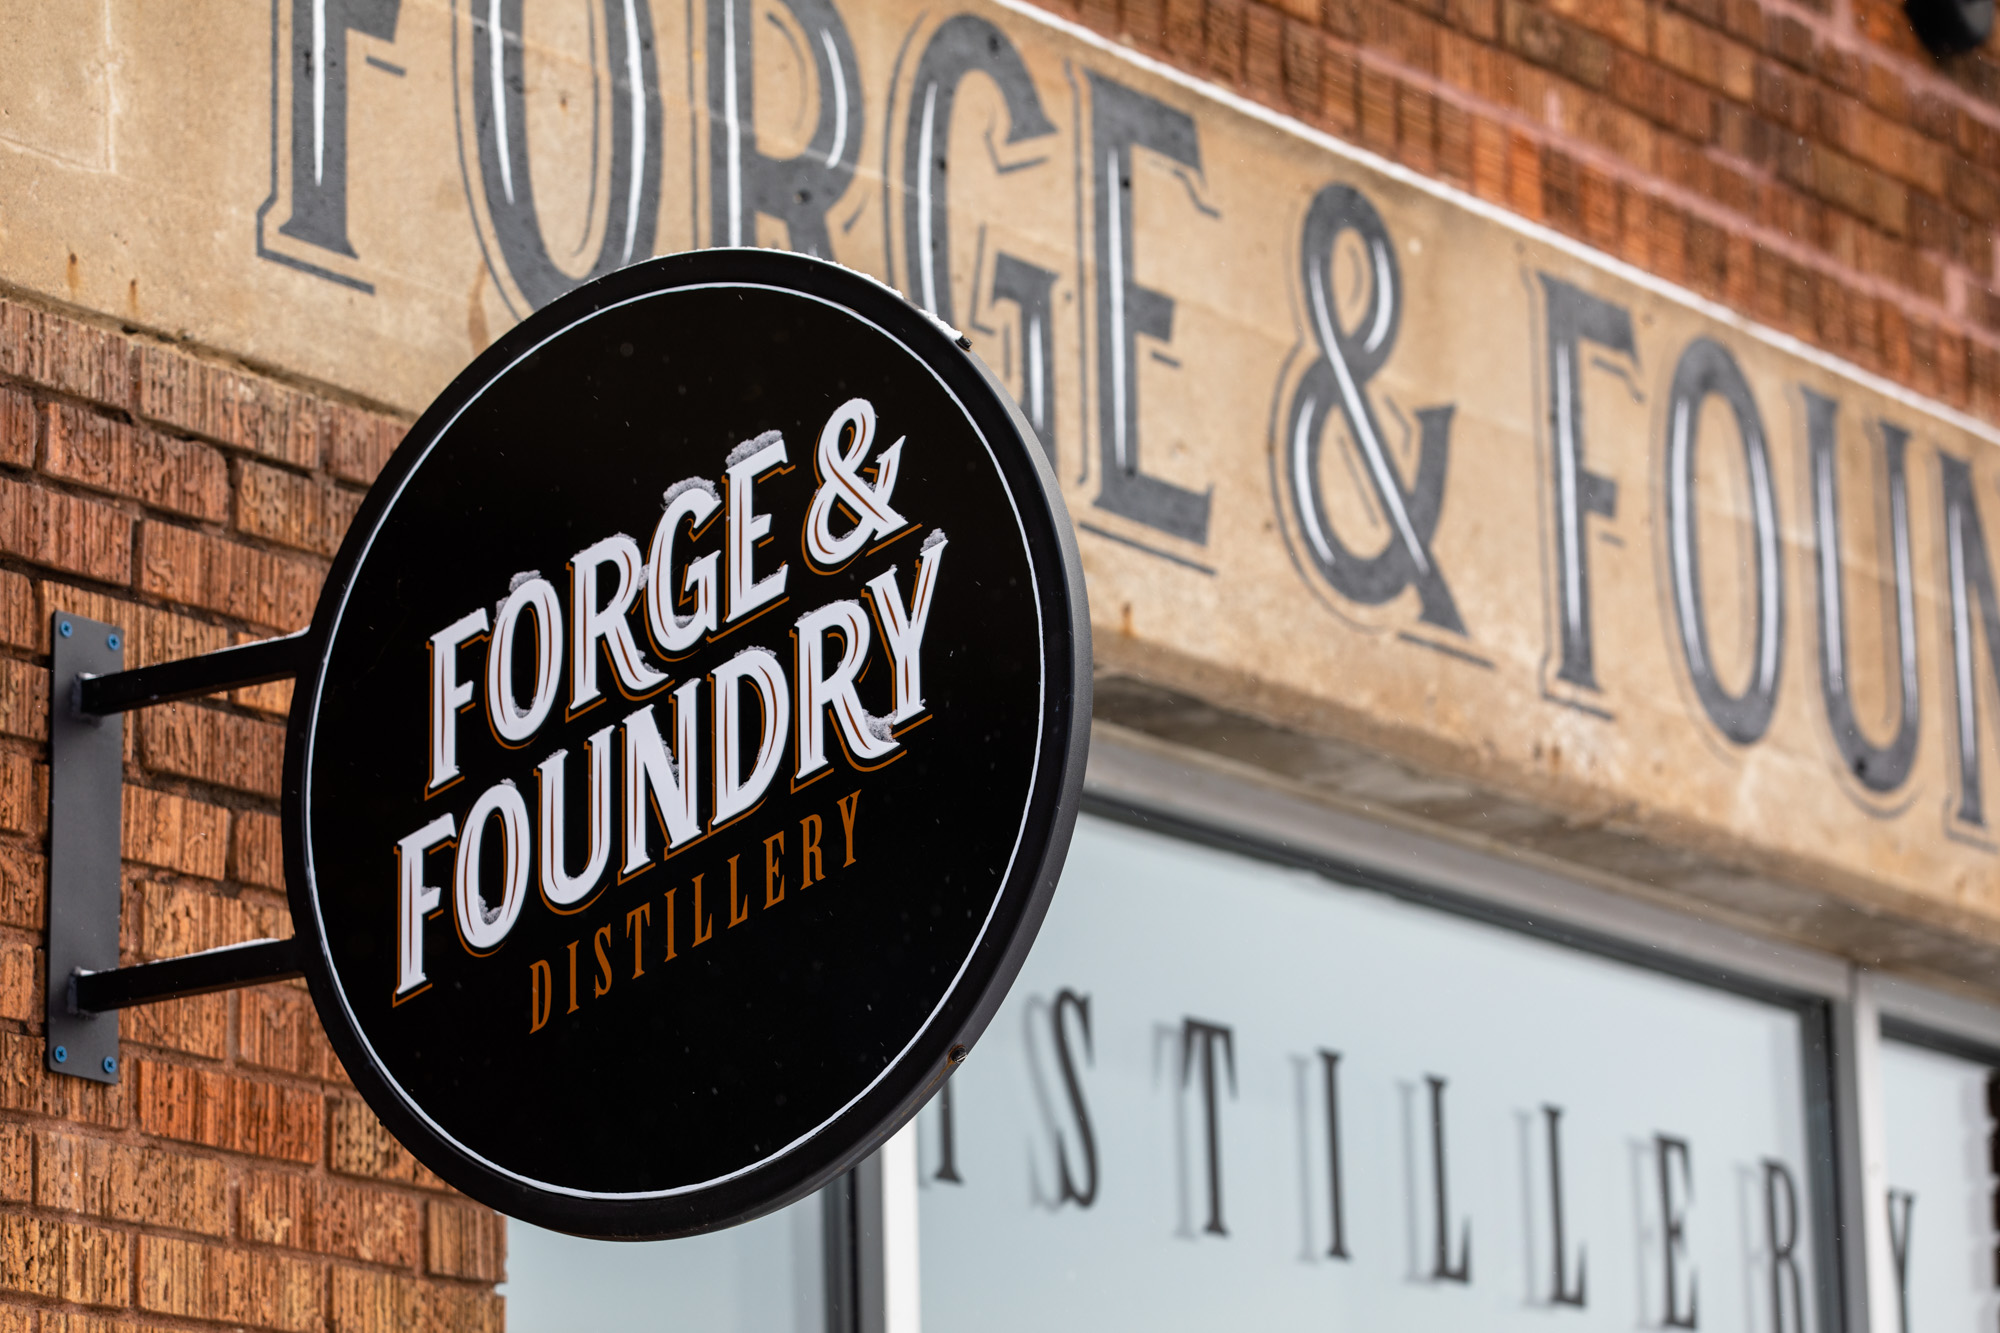 Forge & Foundry Distillery, located on Main Street in downtown Stillwater, Minnesota • Photo by Jordan Wipf